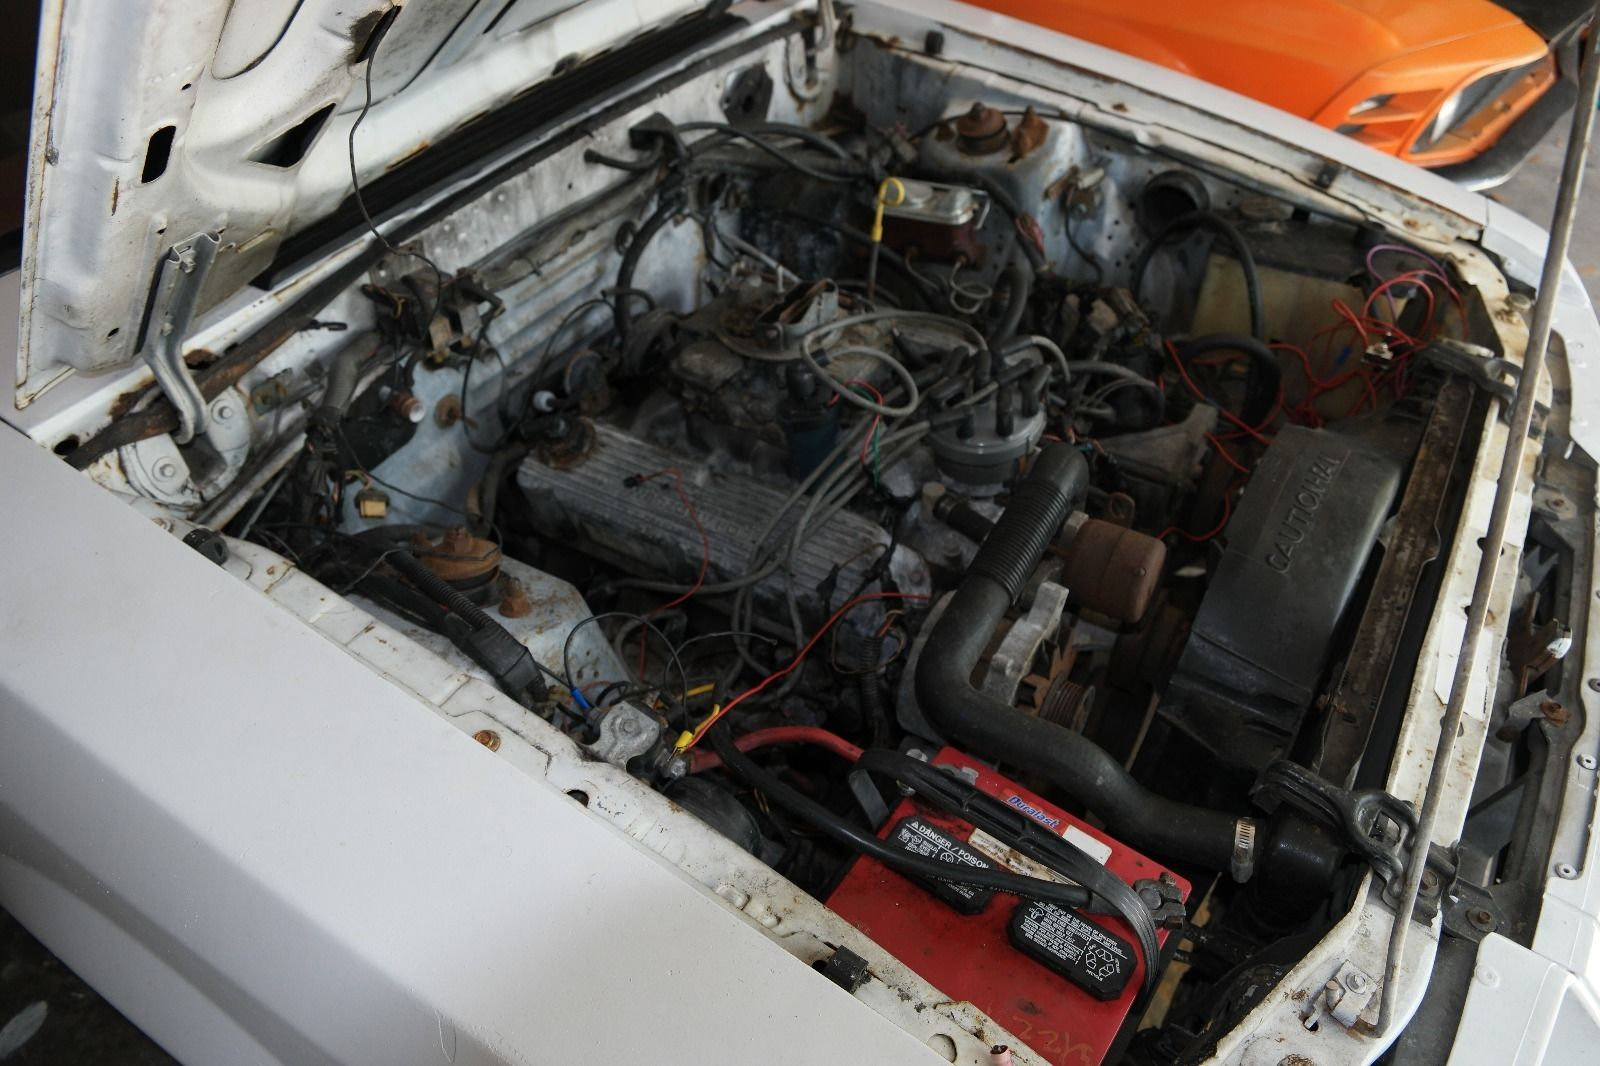 Picture of 1984 ford mustang gt350 exterior - Find This 1984 Ford Mustang Gt350 Here On Ebay Offered For 4 000 Buy It Now Or Make Offer Located In Orlando Fl